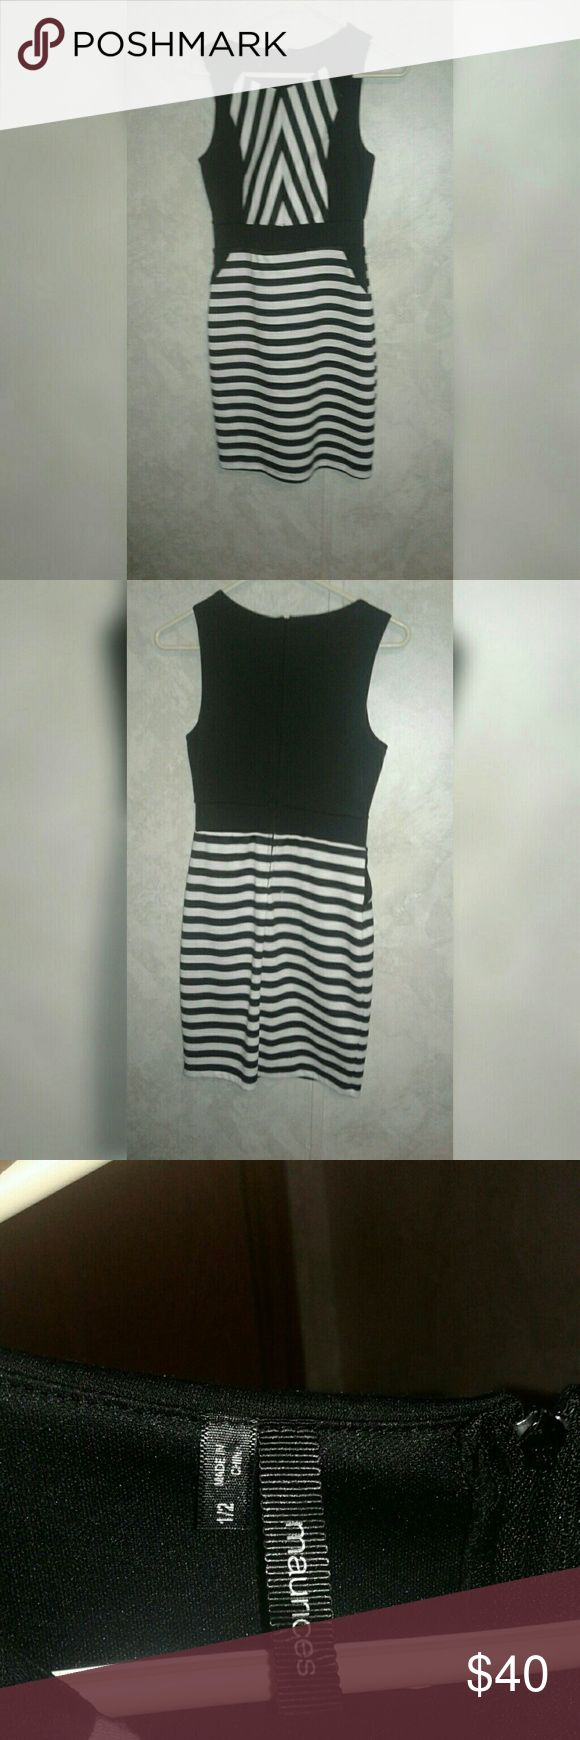 Maurice's Black and White striped bodycon dress Maurice's Black and White striped bodycon dress $40 Paid $70, worn once Size 1/2 Maurices Dresses